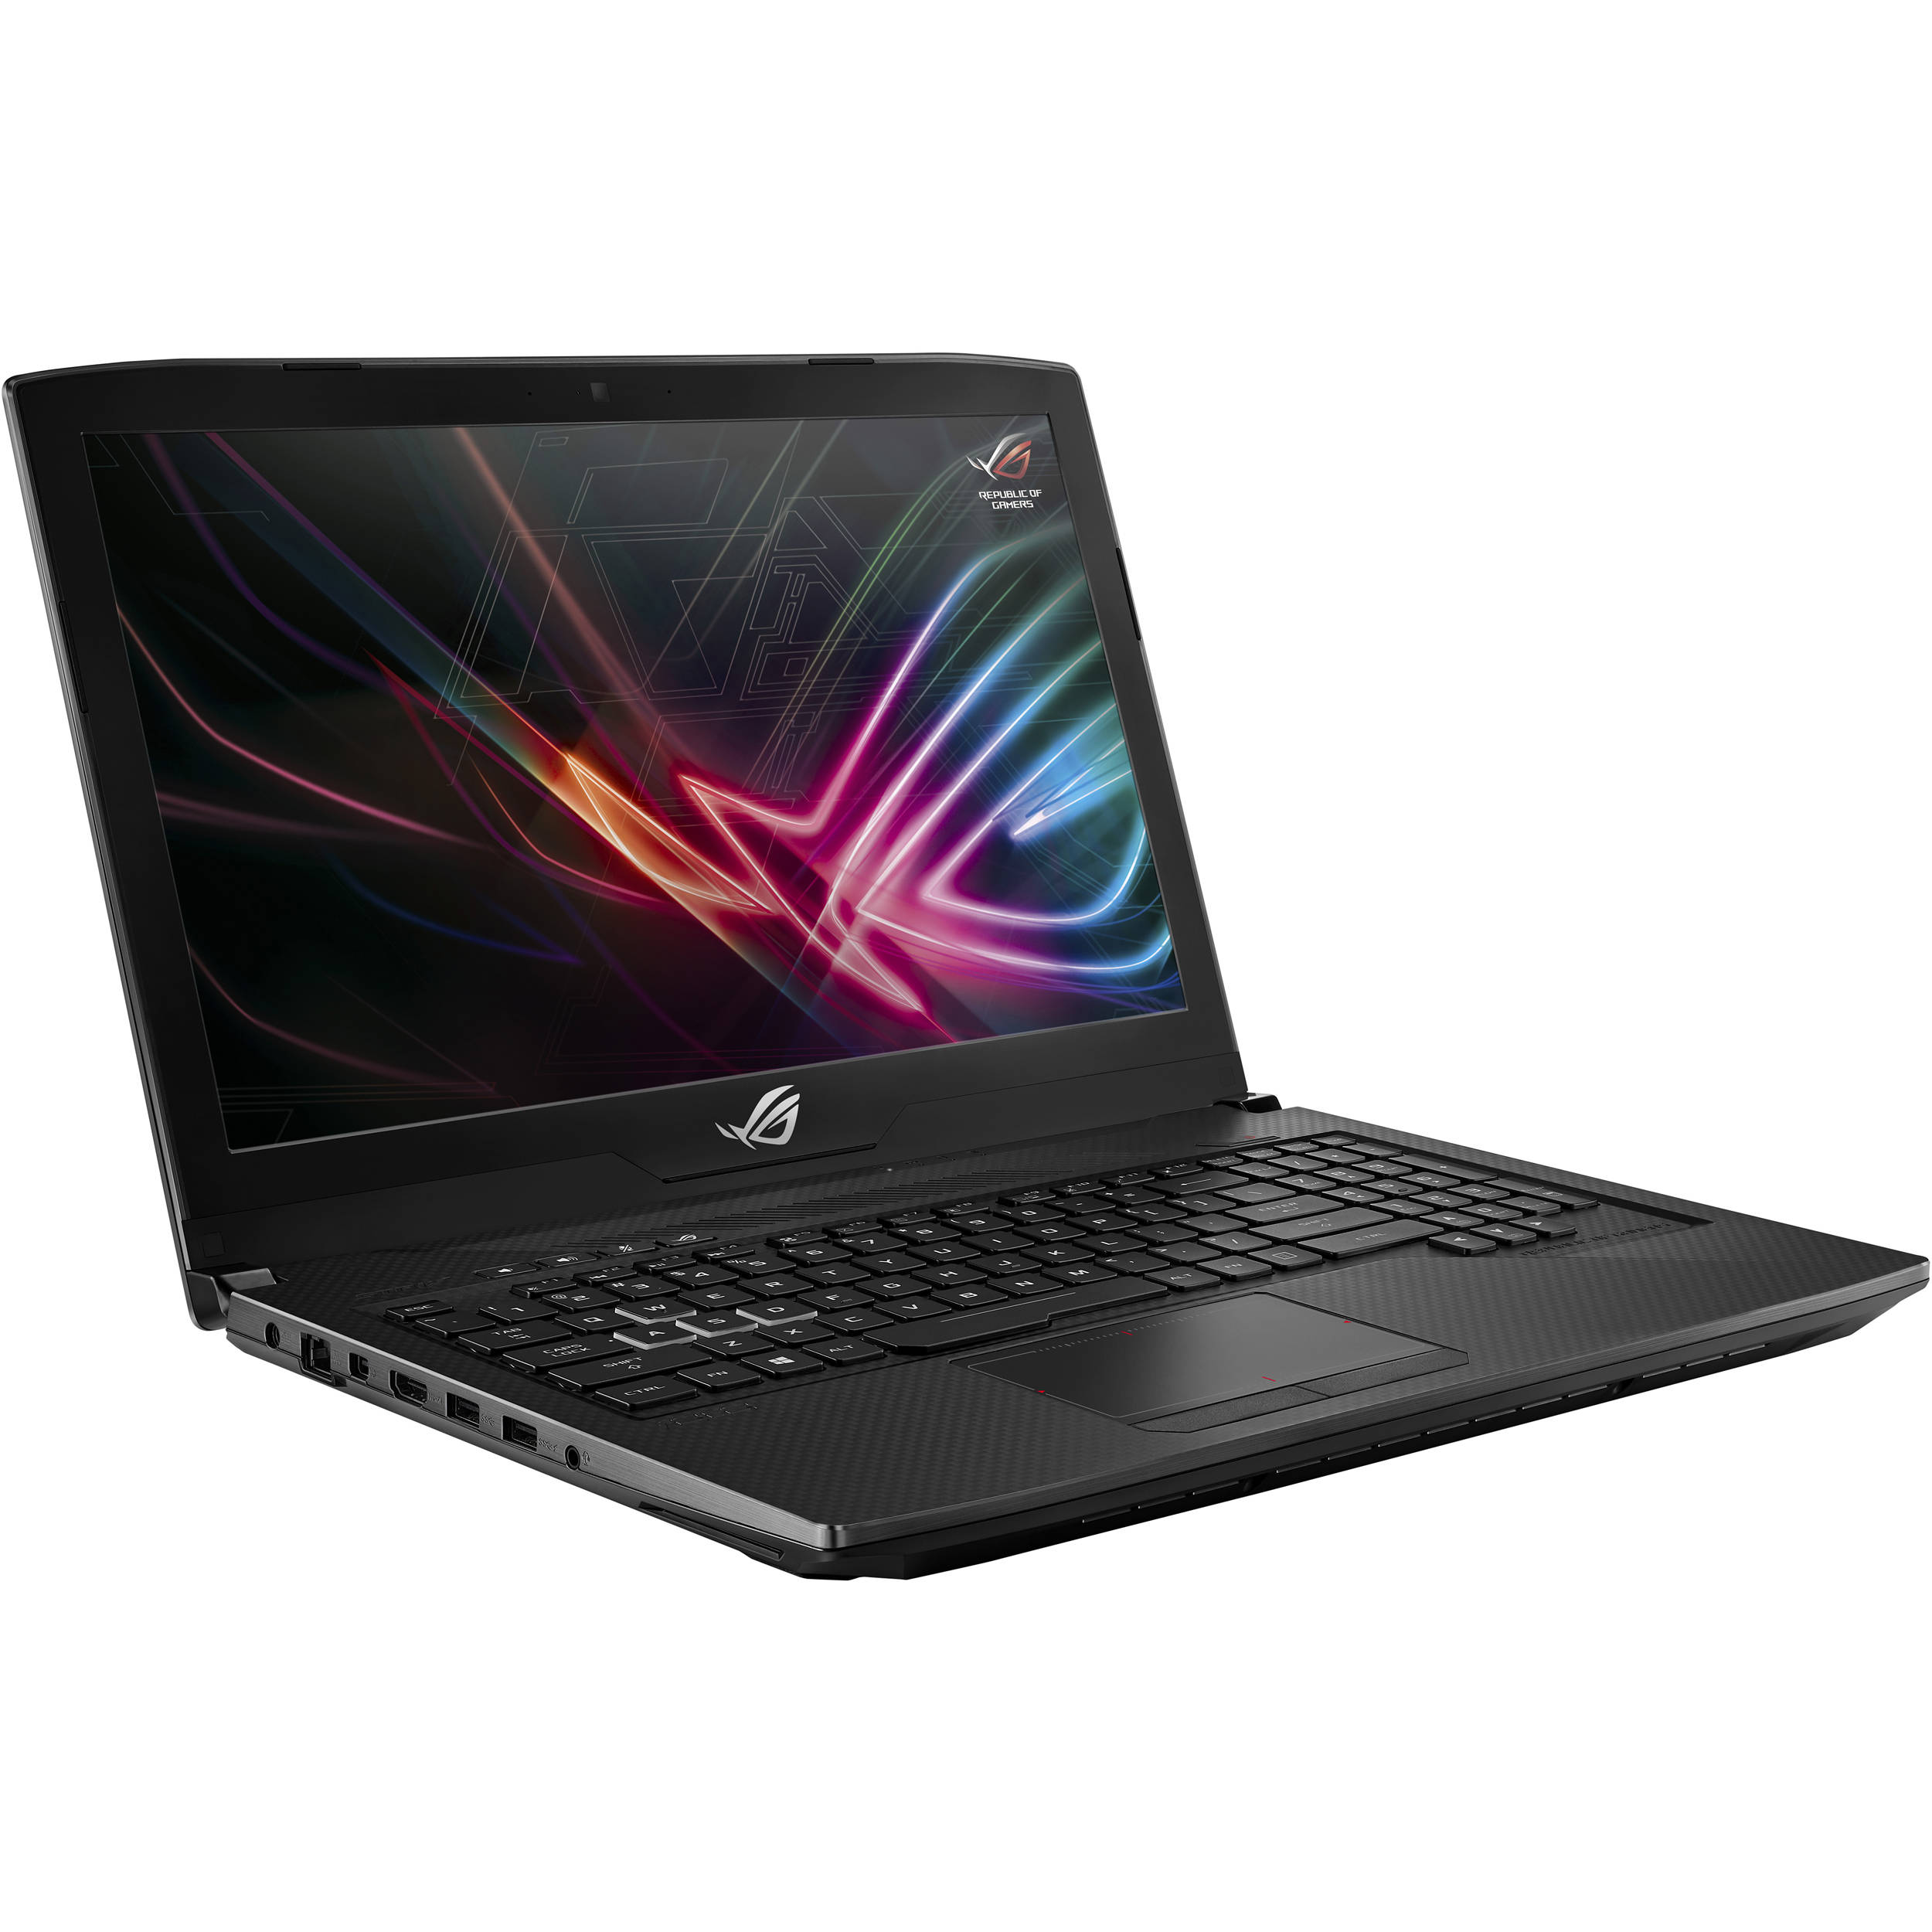 Asus GL503VD Scar Edition - Core i5 7300HQ